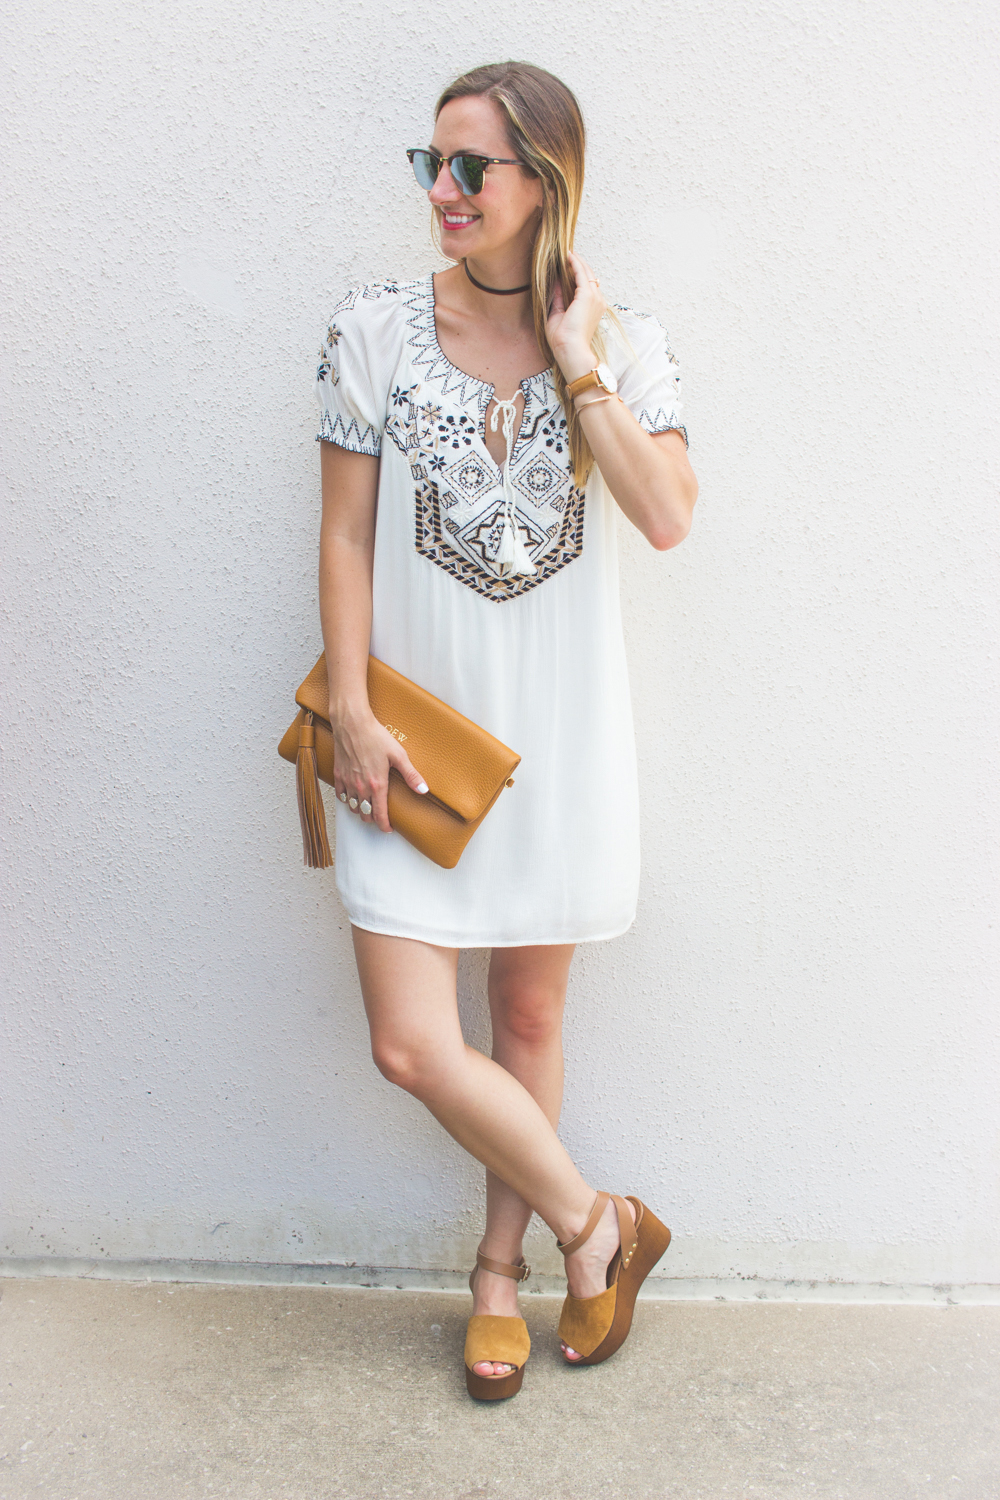 livvyland-blog-olivia-watson-austin-texas-fashion-blogger-abercrombie-and-fitch-embroidered-off-shoulder-dress-boho-outfit-ray-ban-reflective-clubmaster-summer-outfit-10